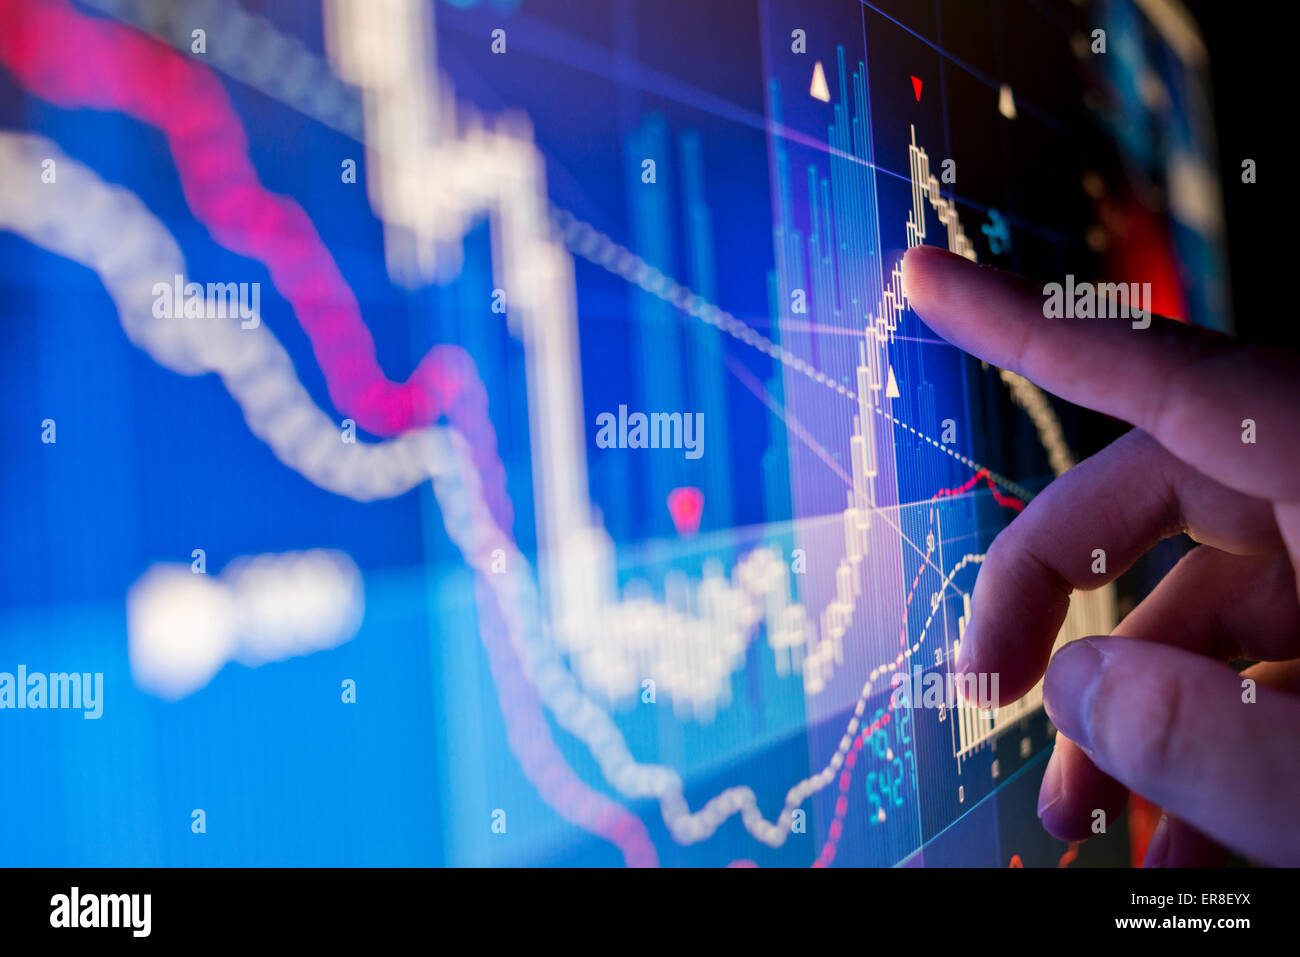 A city worker Analyzing stock market data on a monitor. - Stock Image